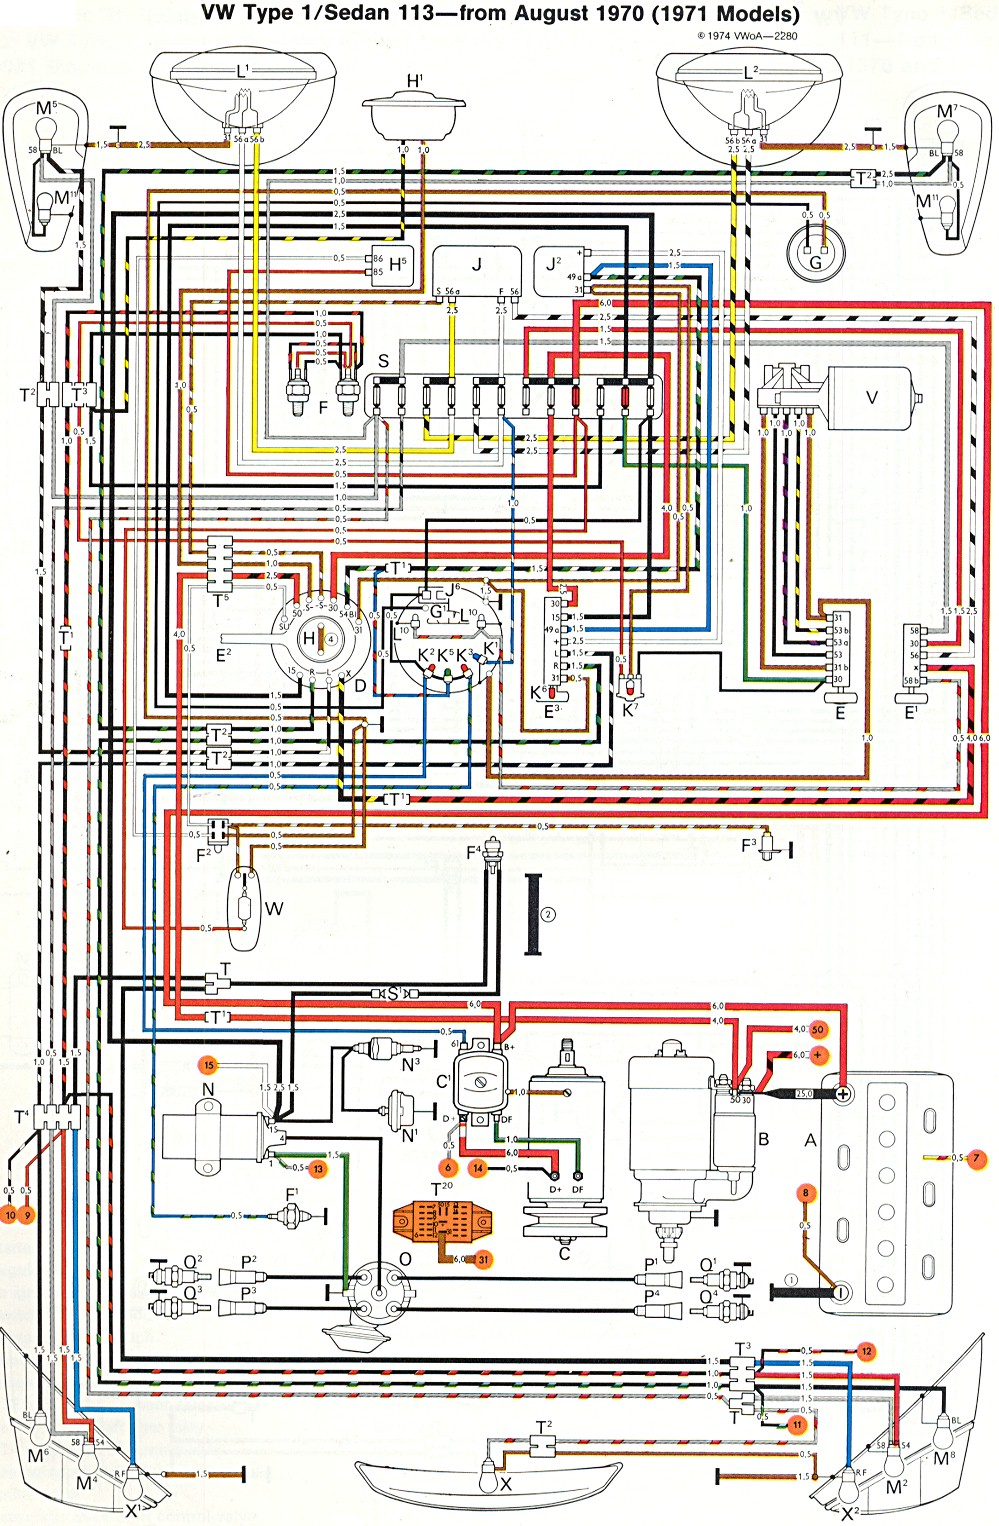 bug_super_71 1971 super beetle wiring diagram thegoldenbug com vw bug wiring diagram at gsmx.co